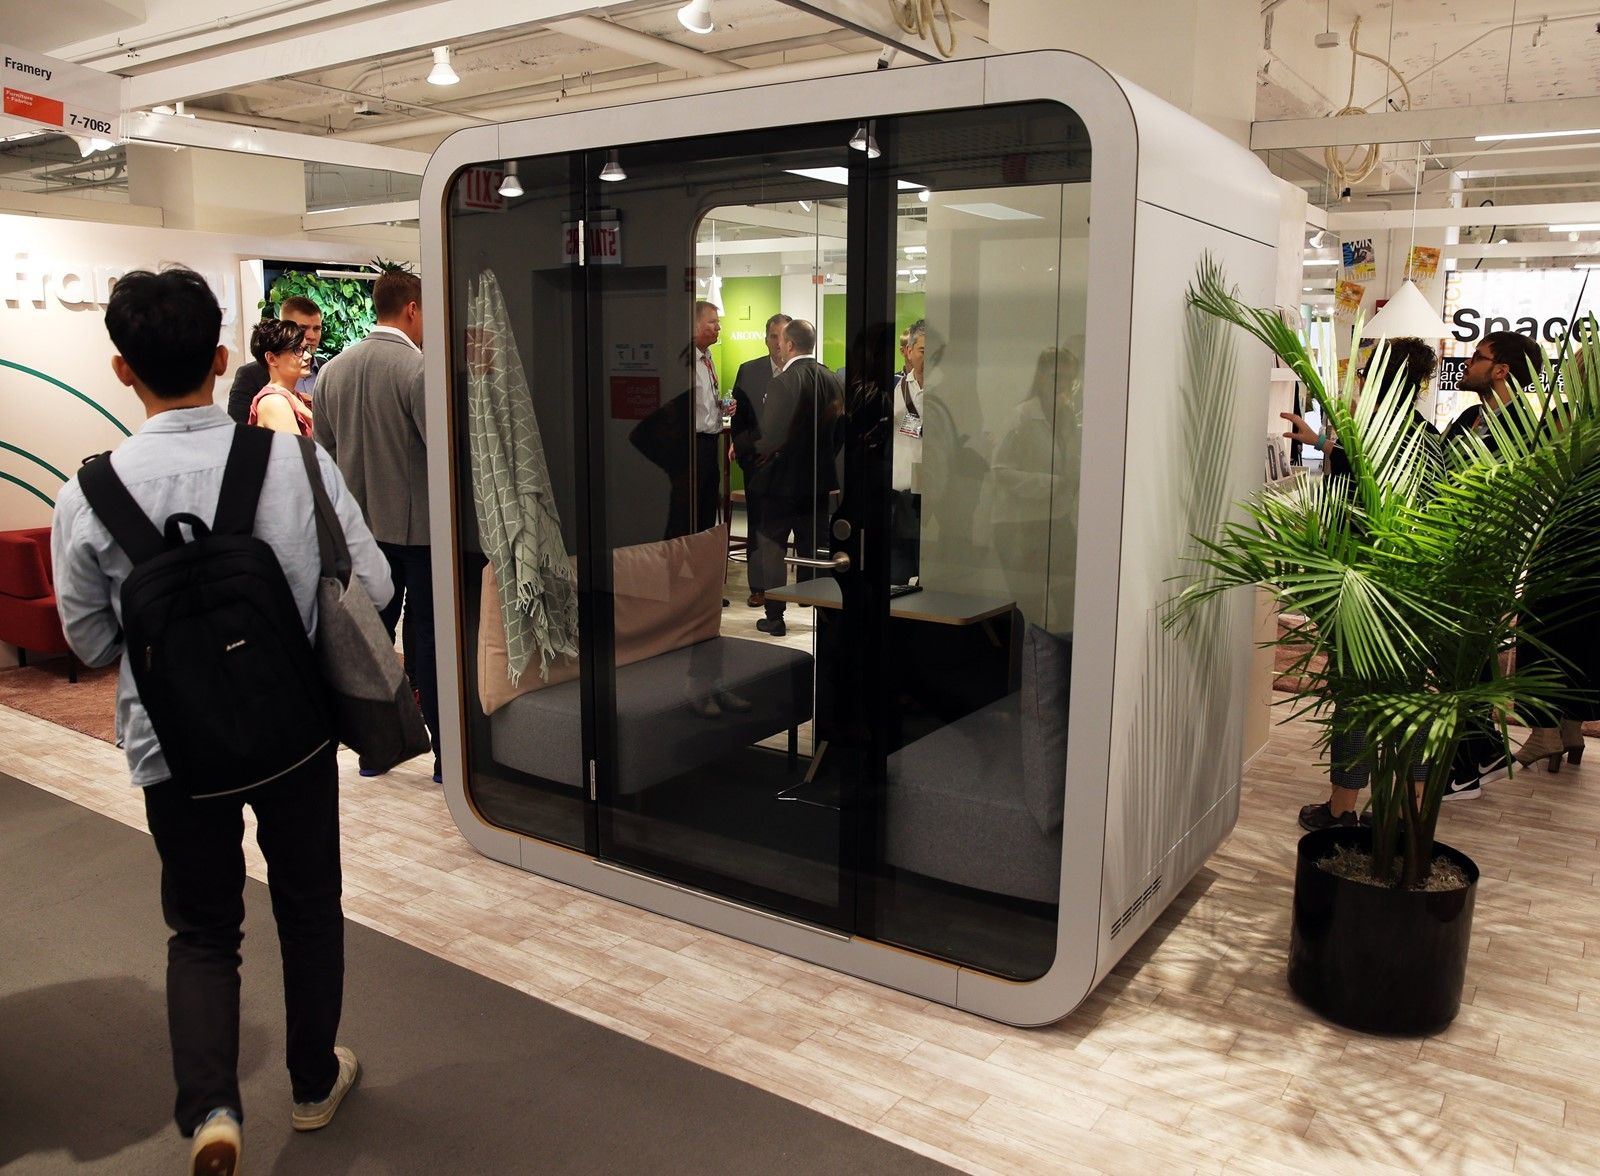 office sleeping pod. FRAMERY, An 8-year-old Finnish Company, Introduced Its NapQ, Office  Sleeping Pod, At A Trade Show In Chicago Last Month. (Photographs ByTerrence Antonio Pod